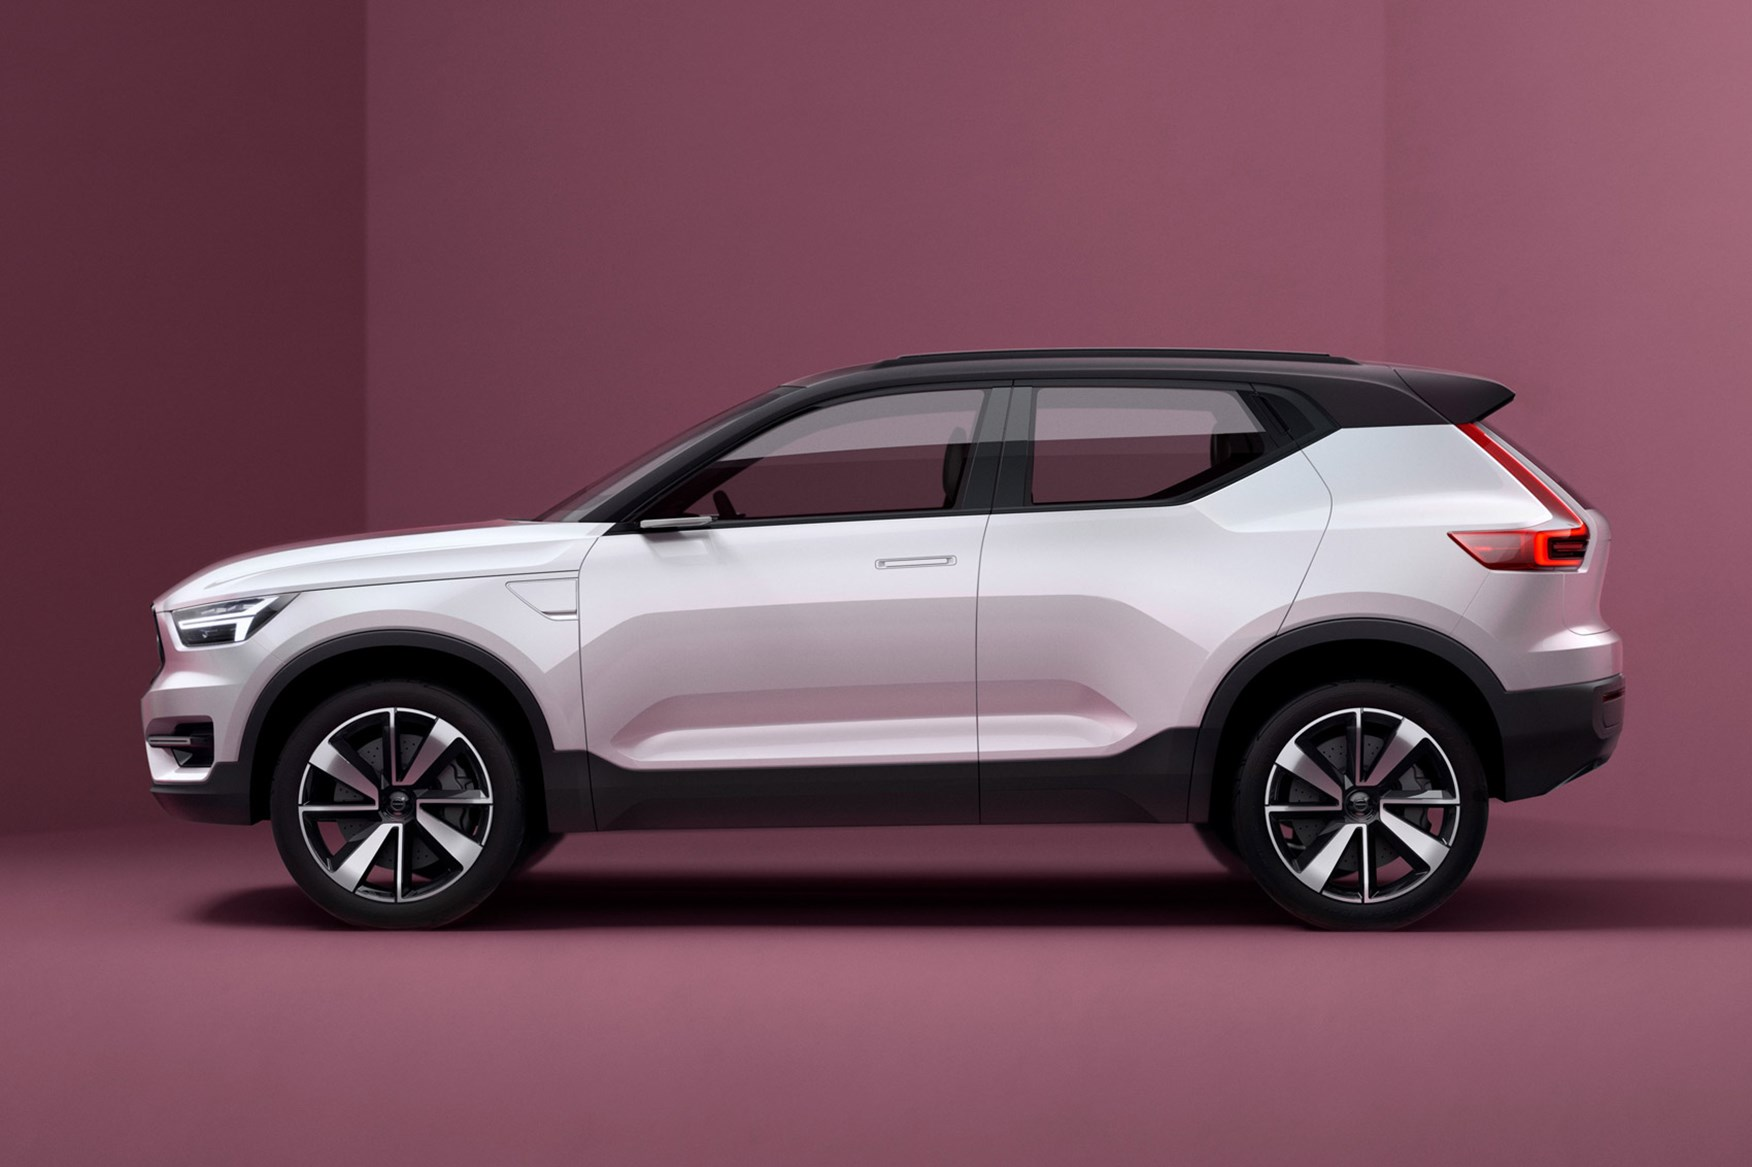 volvo previews new 40 series models with double concept car unveil by